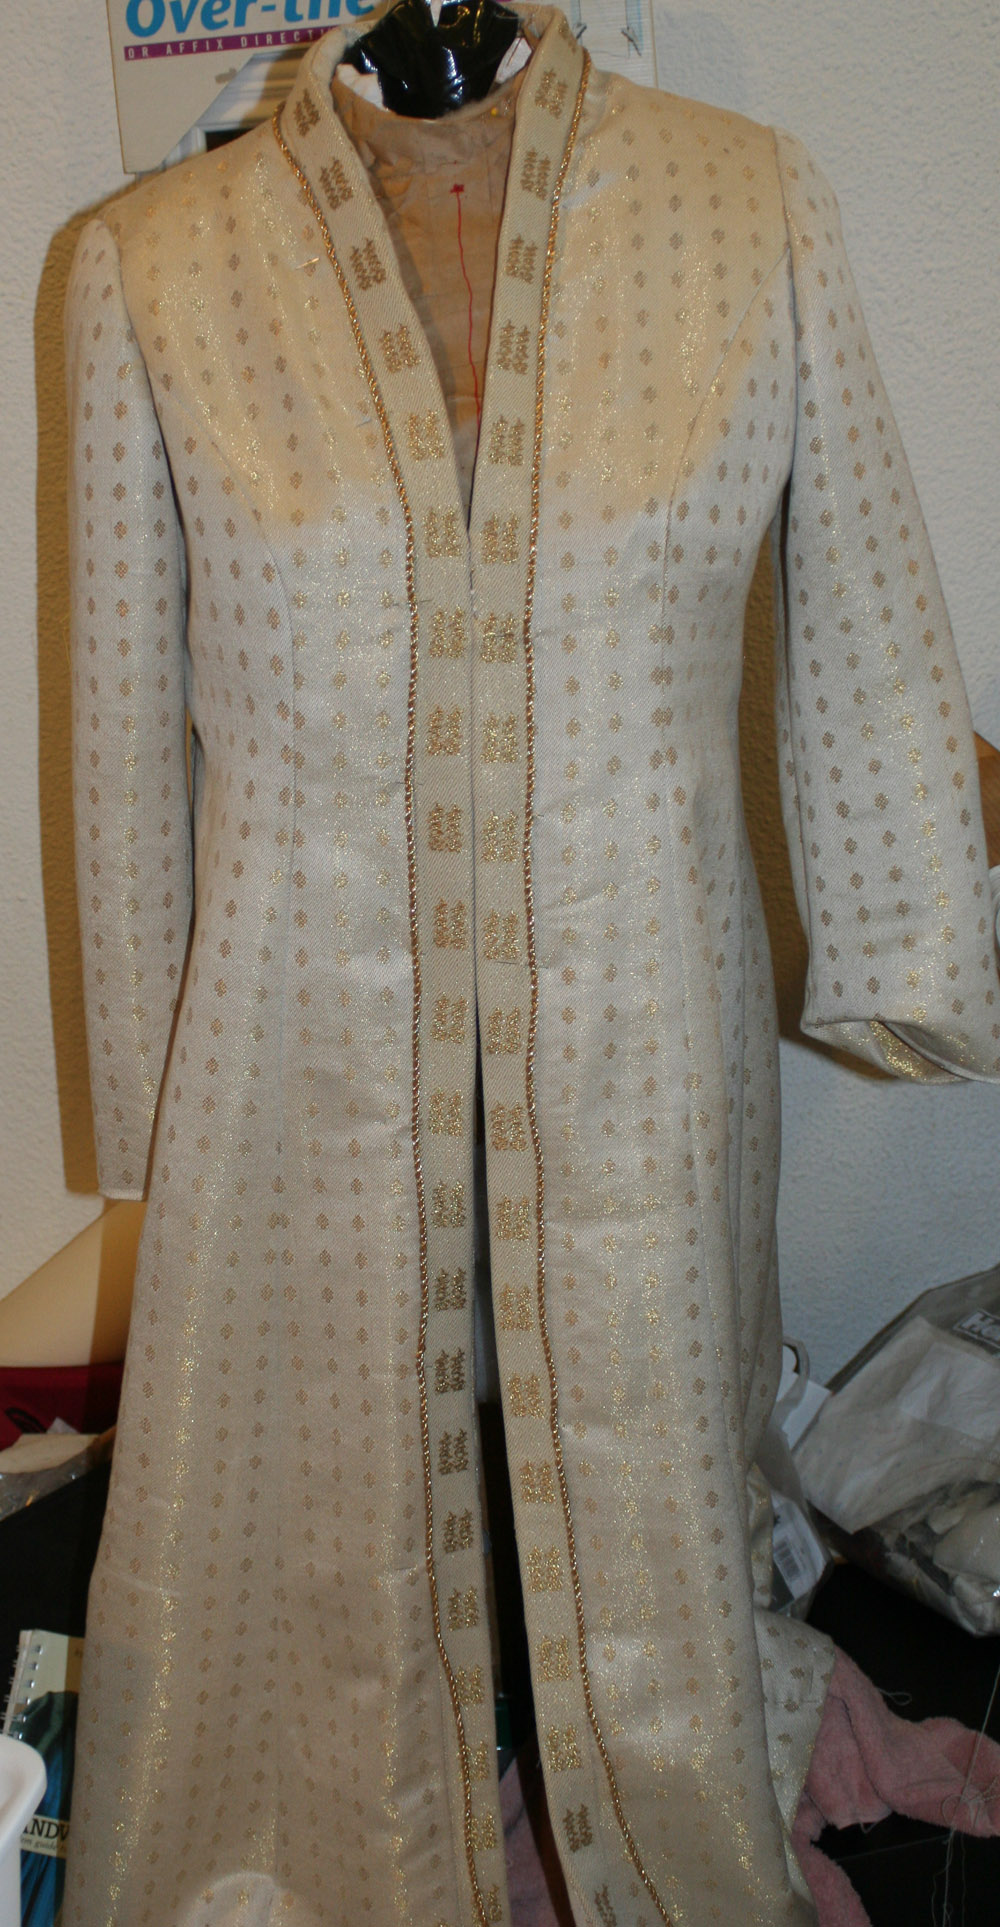 Handwoven wedding coat with double-happiness ribbon